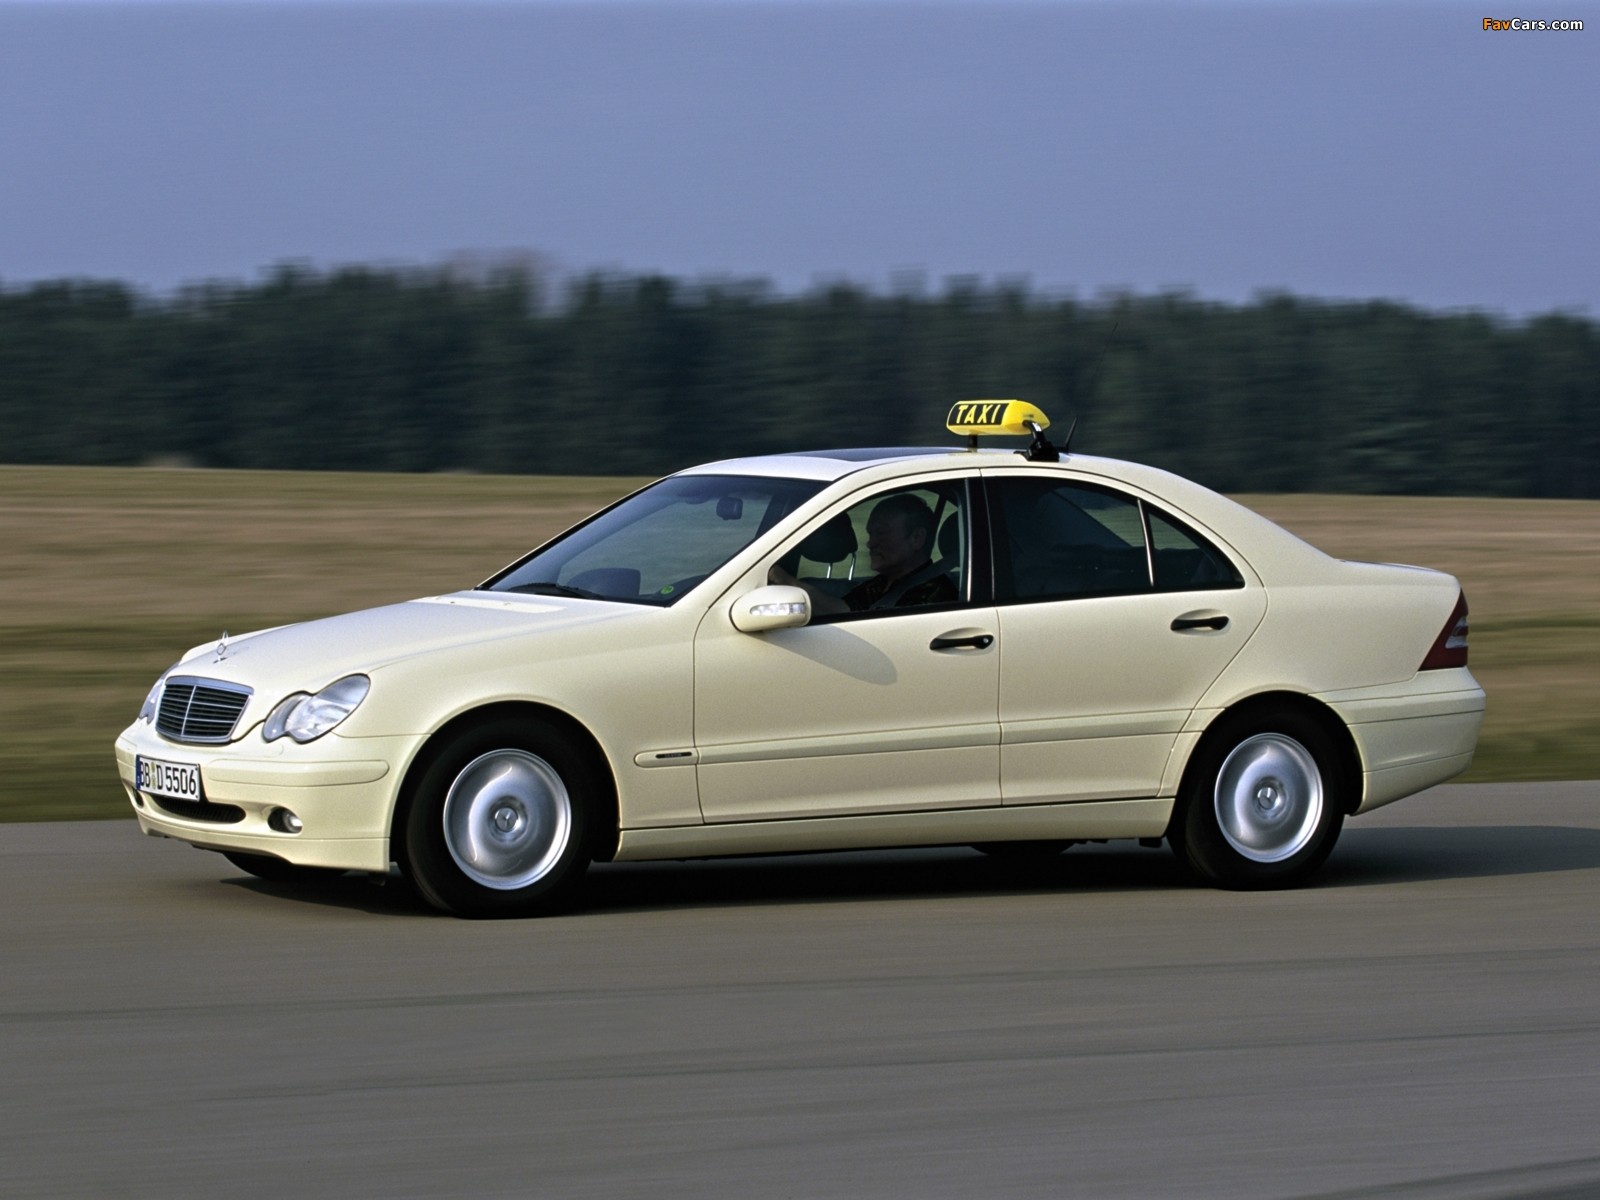 images of mercedes benz c klasse taxi w203 2000 05. Black Bedroom Furniture Sets. Home Design Ideas